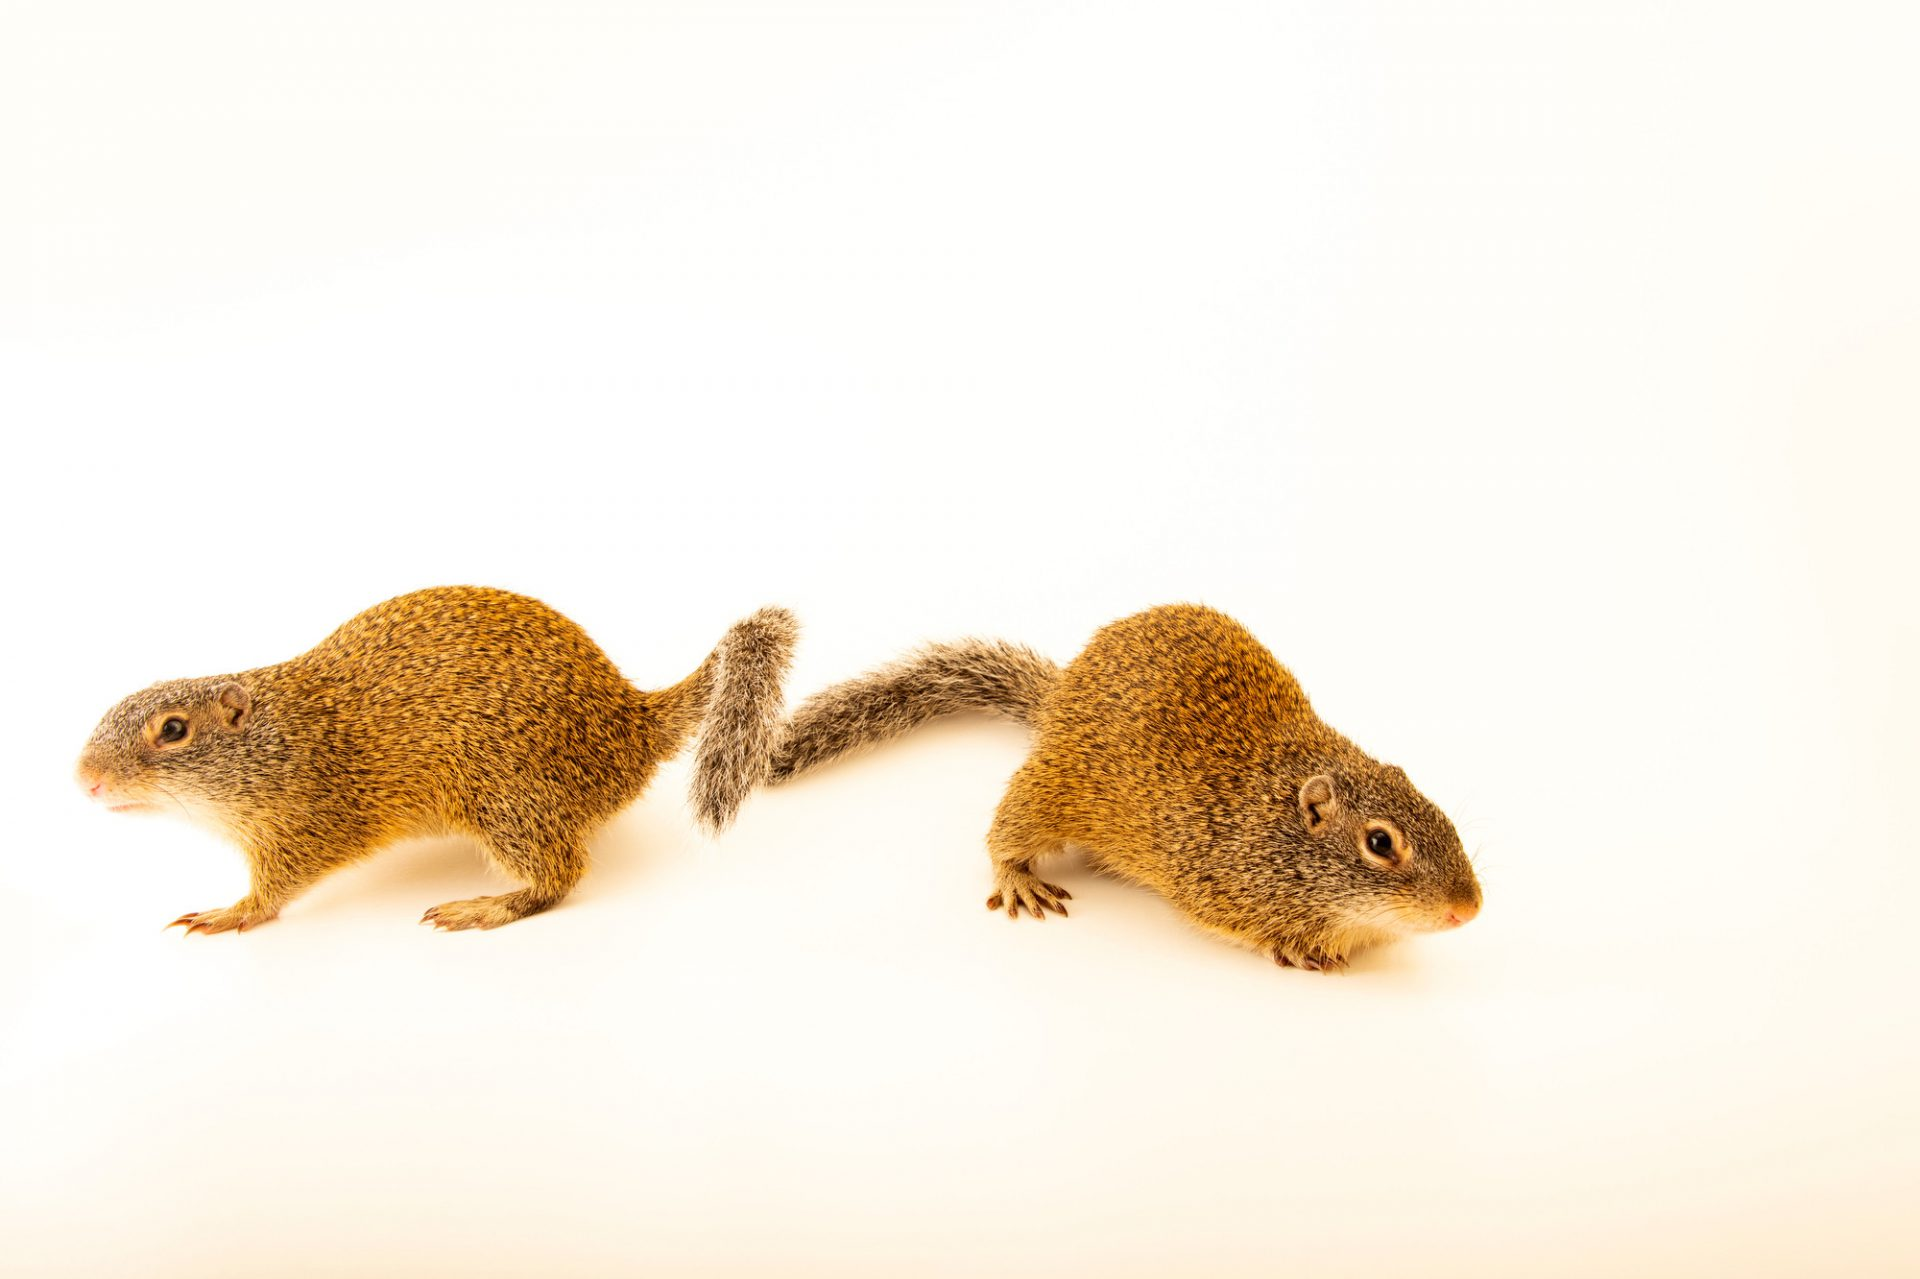 Photo: A pair of FranklinÕs ground squirrels (Poliocitellus franklinii) at the Wildlife Rescue Center of Minnesota.